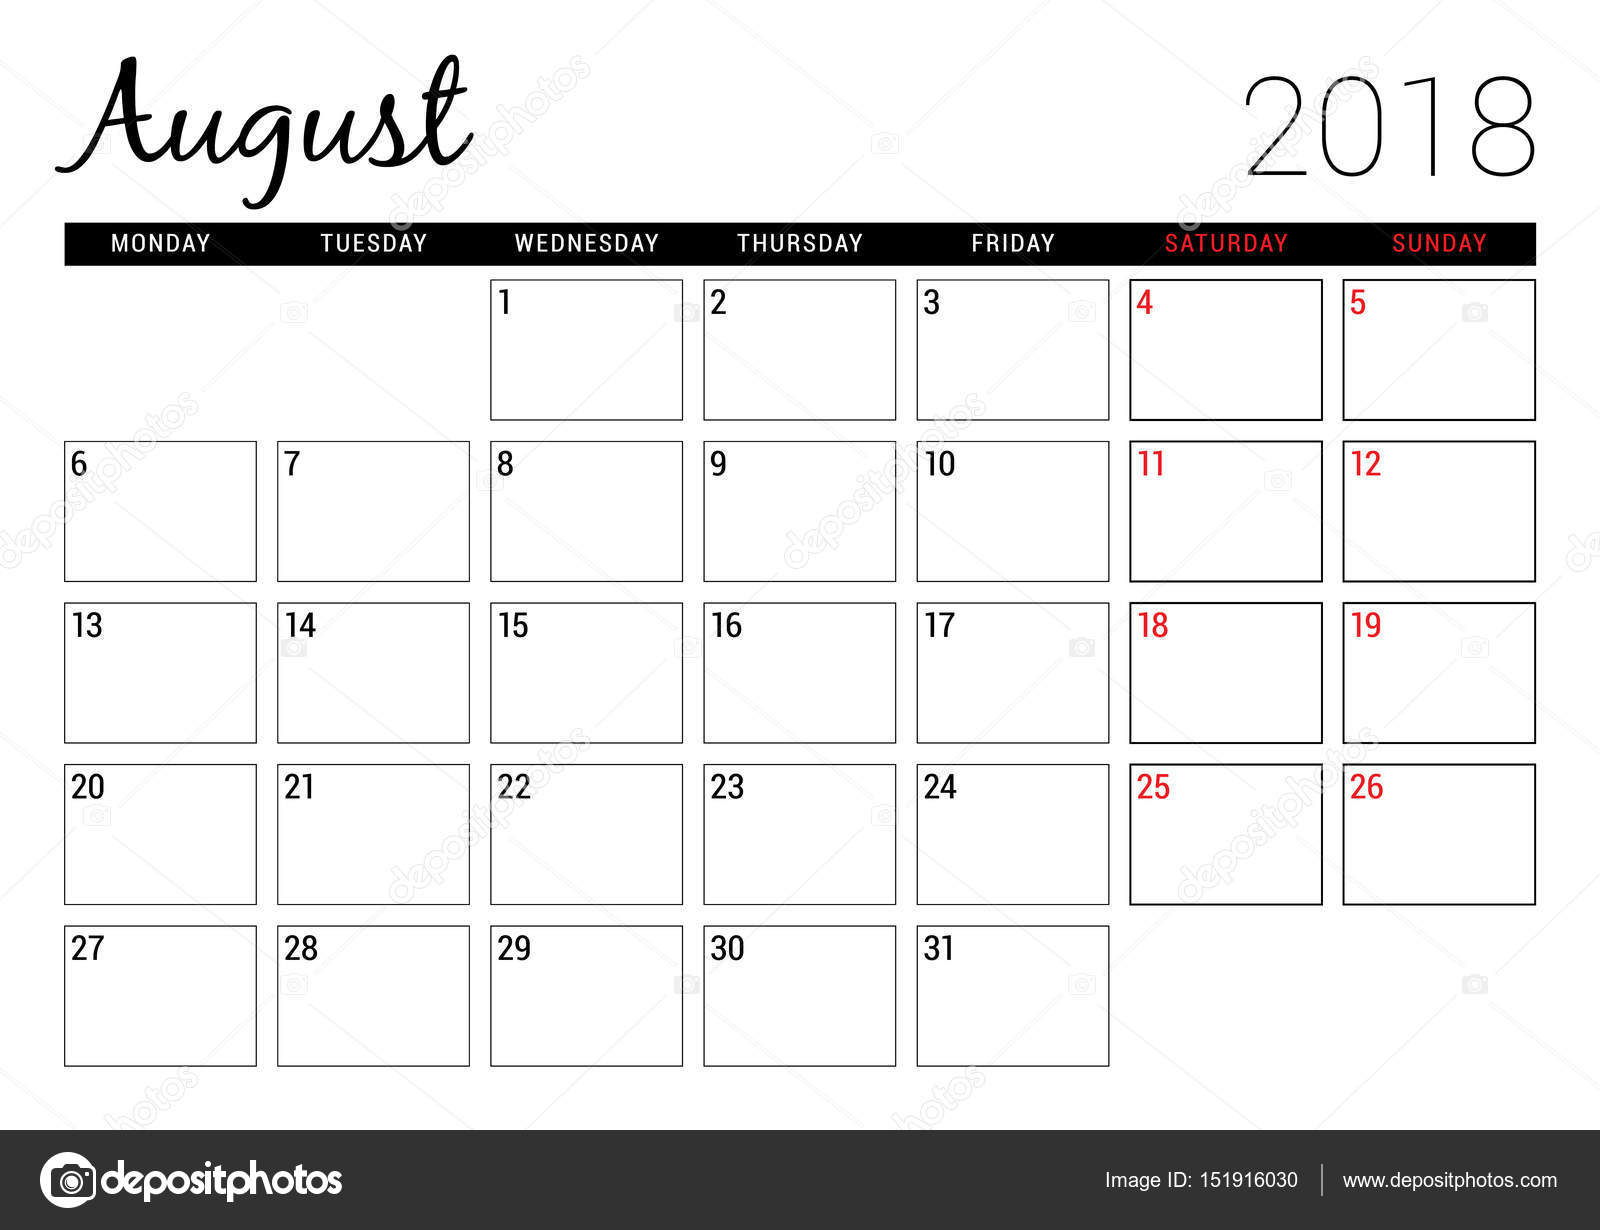 August 2018. Printable Calendar Planner Design Template